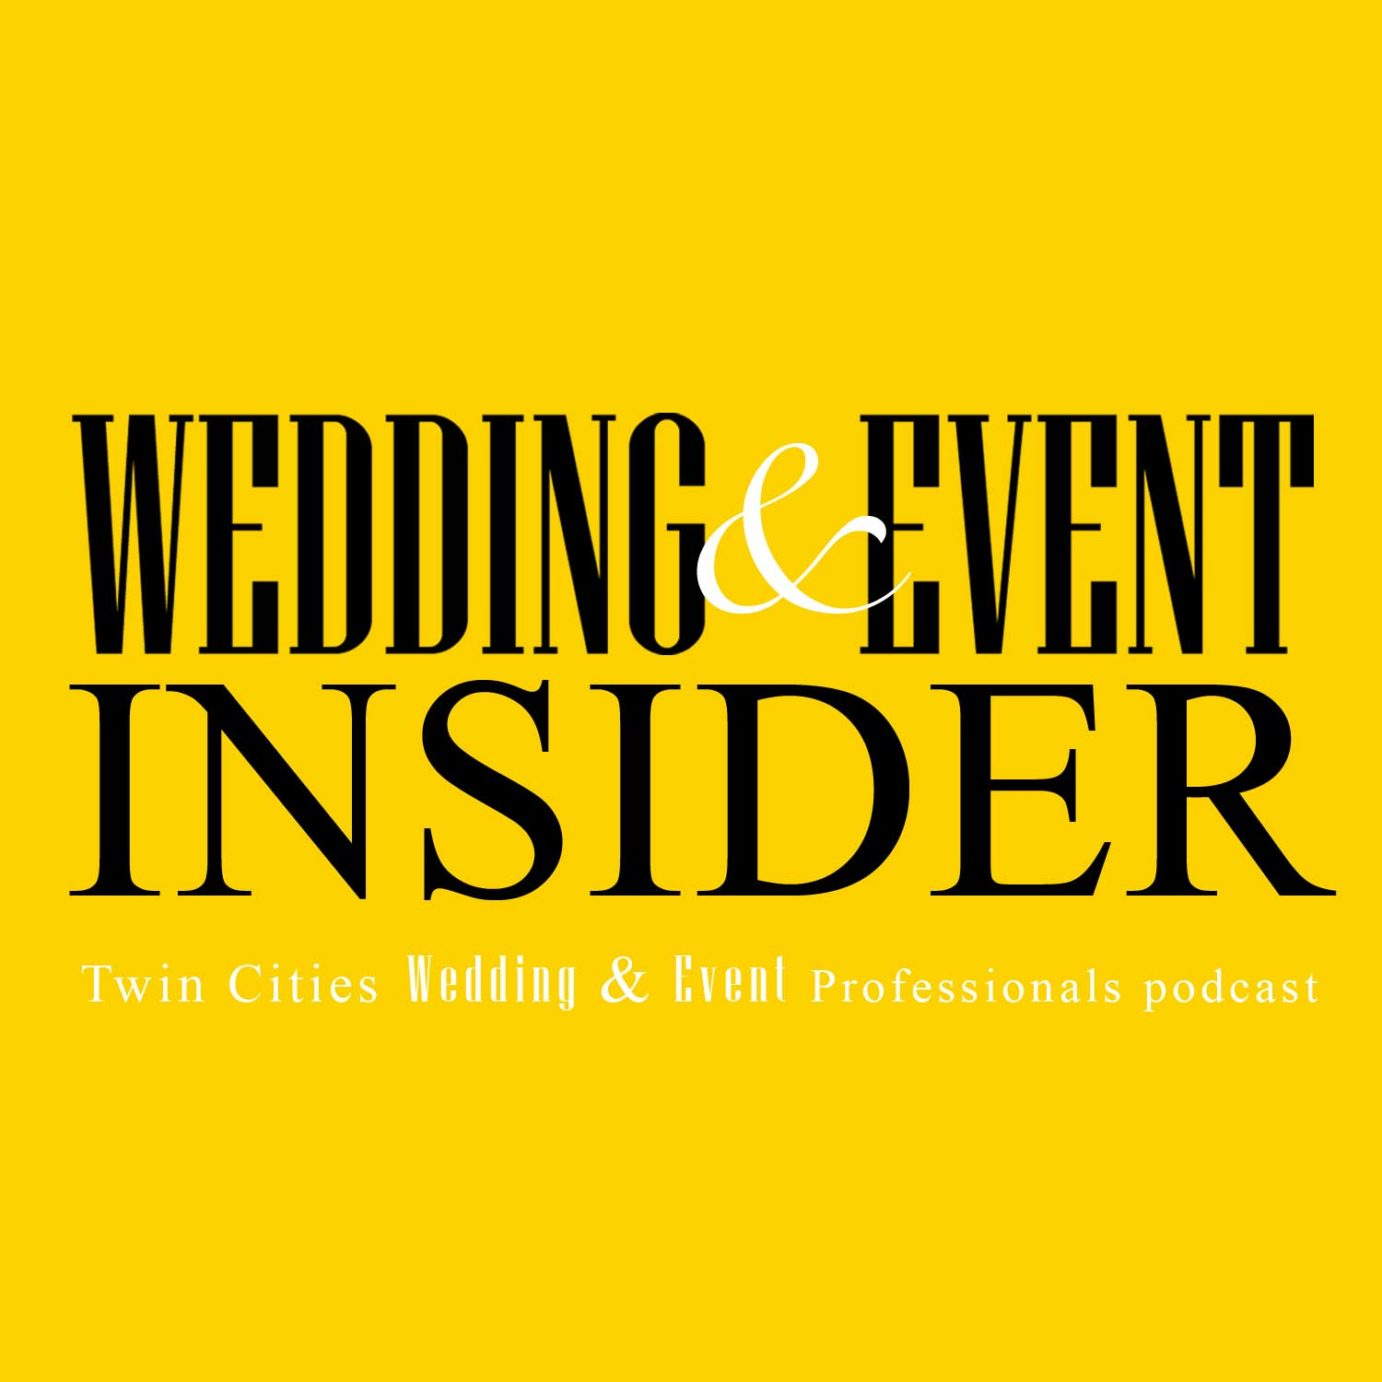 Wedding & Event Insider Podcast Logo